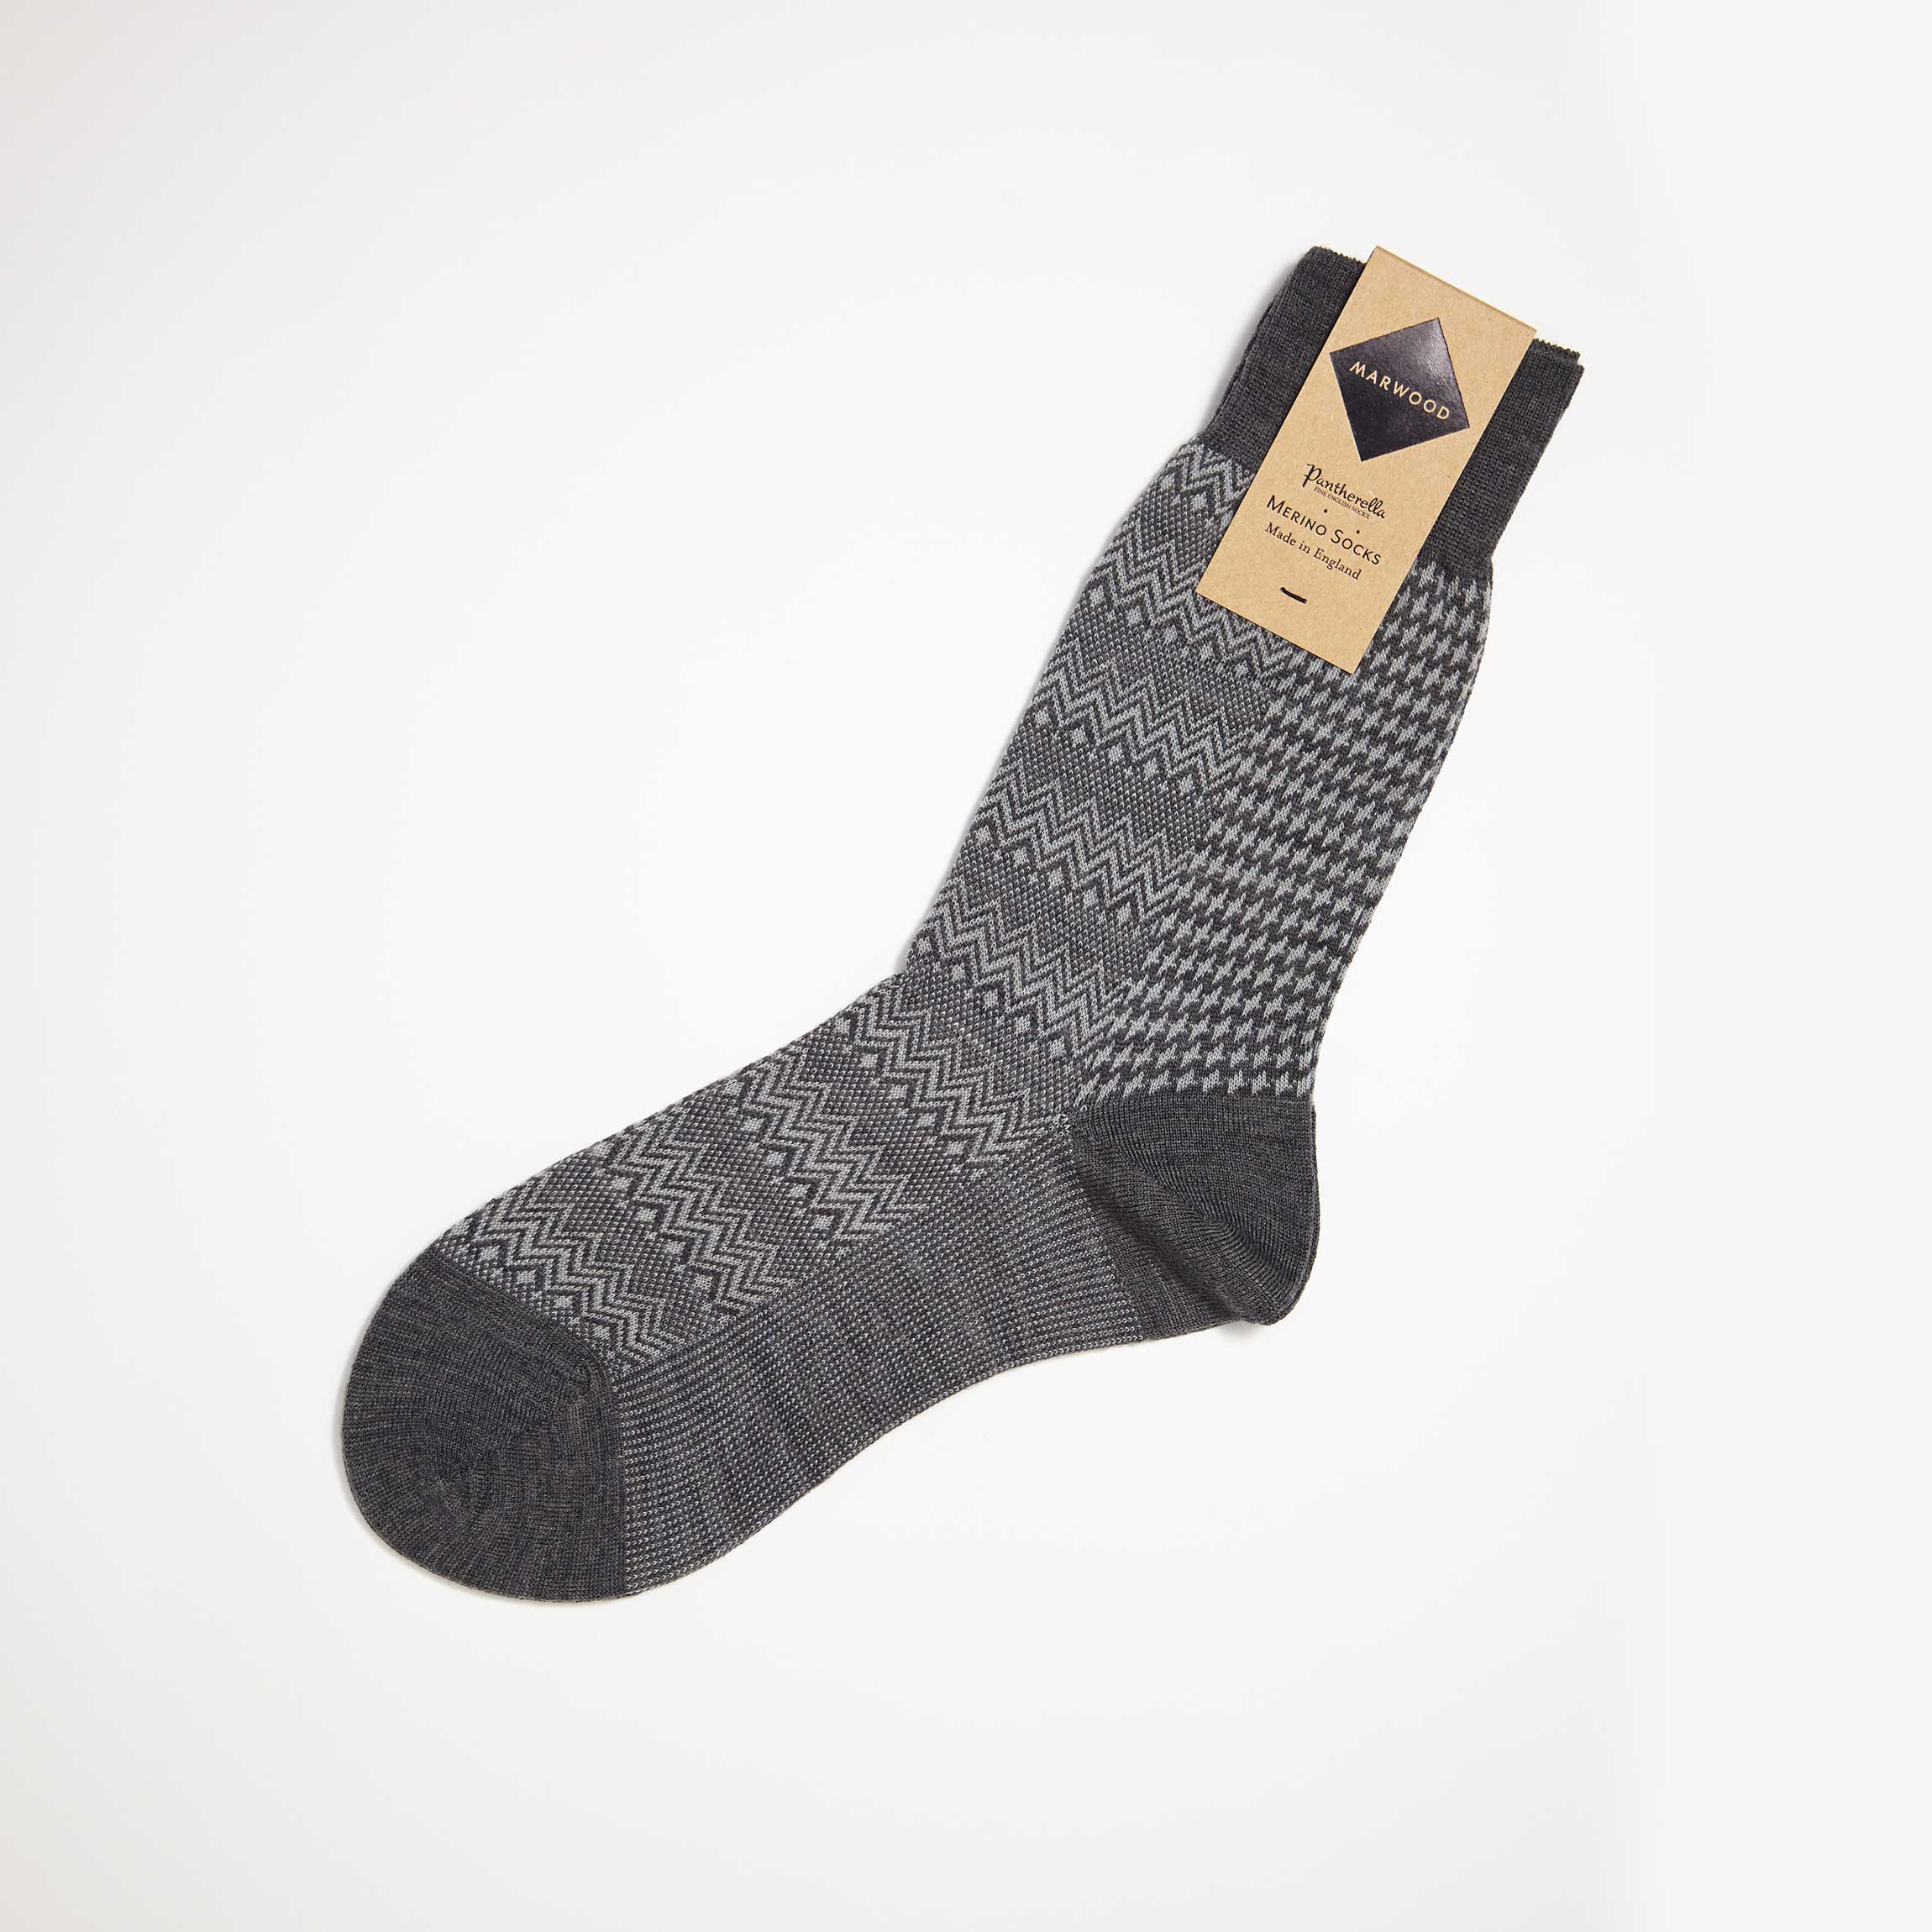 Marwood x Pantherella Merino Wool Socks